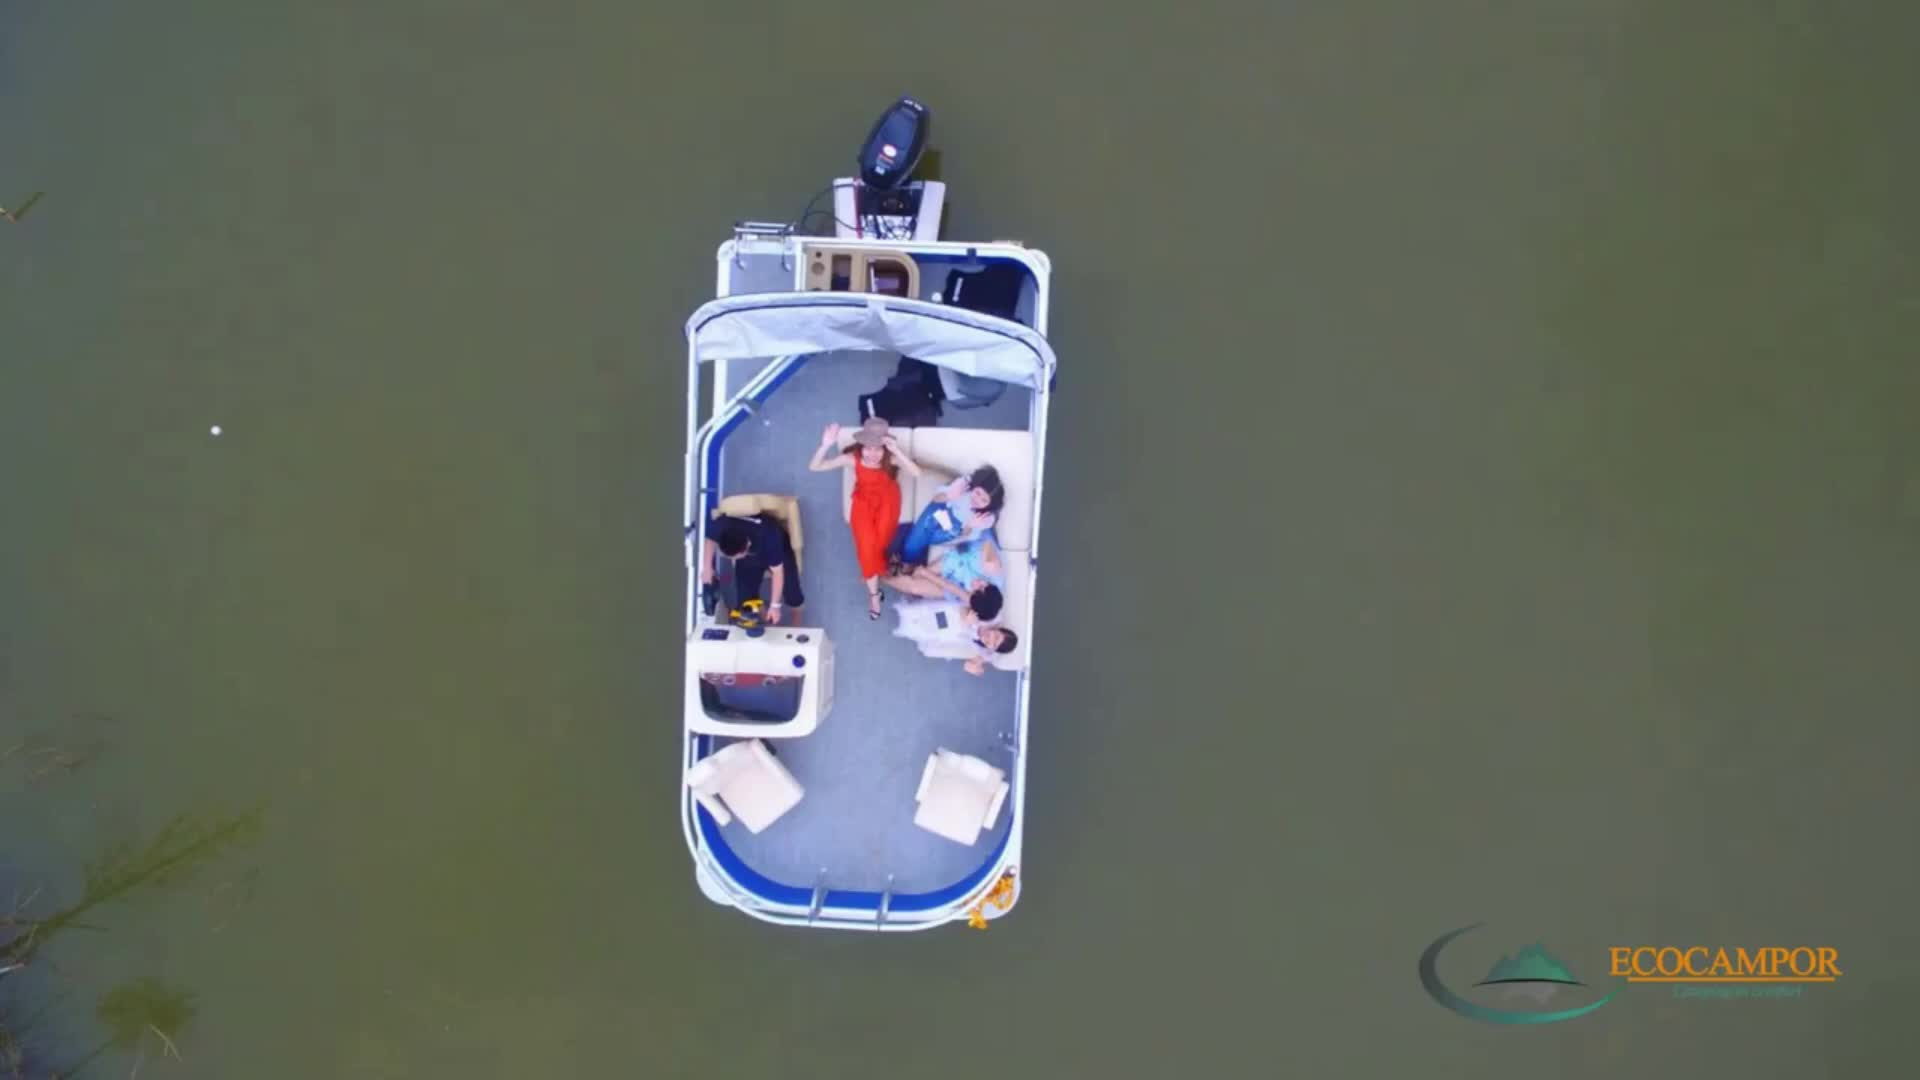 ECOCAMPOR China manufacturer Luxury Inflatable Aluminum fishing Electric Catamaran Pontoon Boat wholesale (4 person, 2 person)